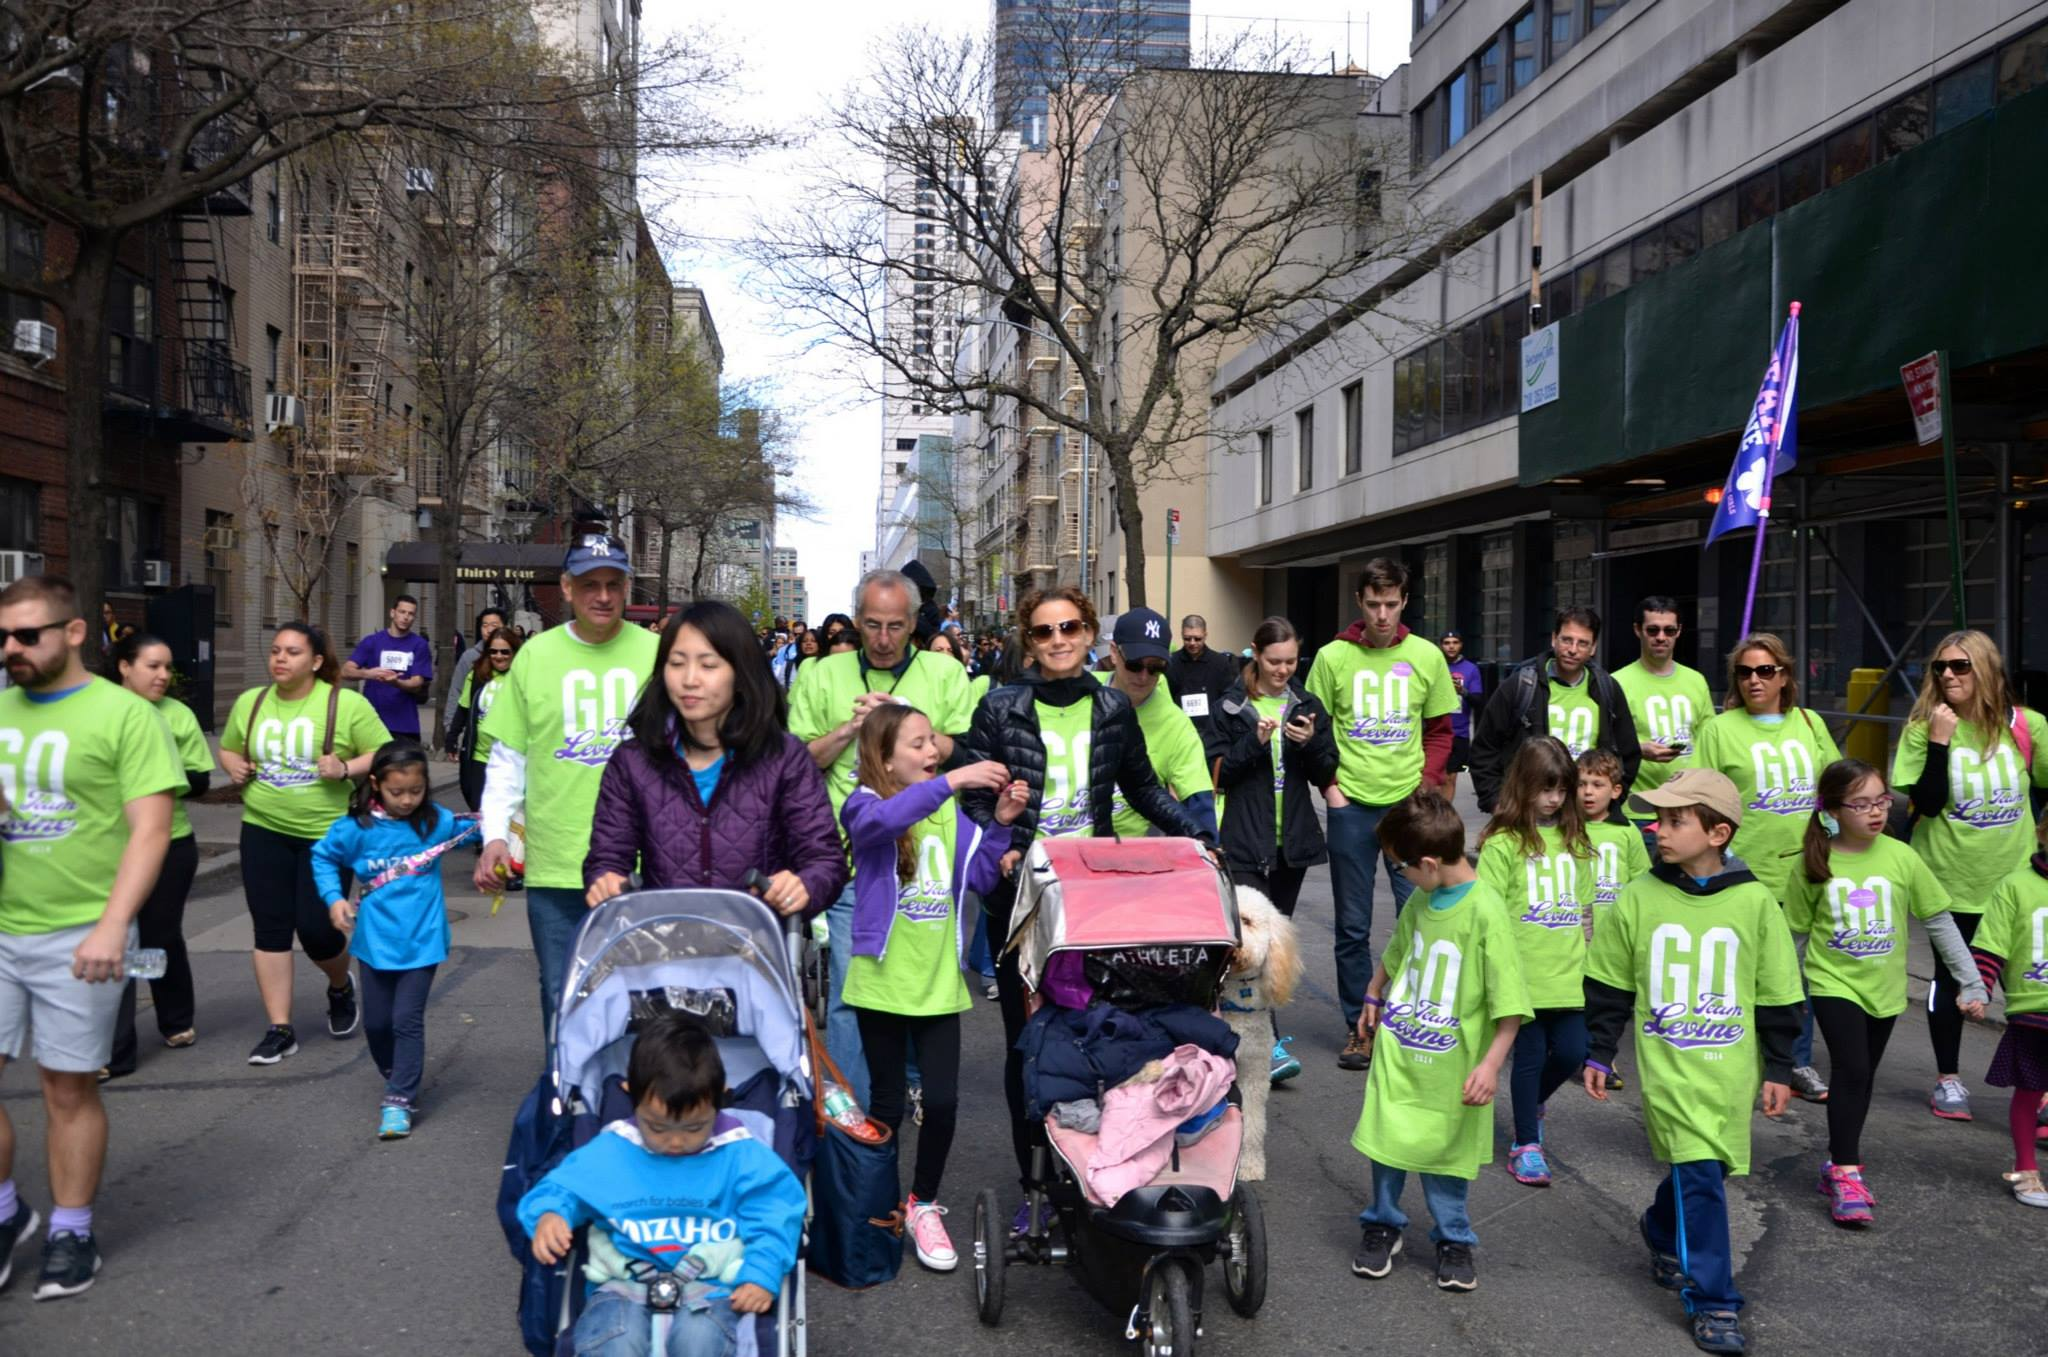 team-levine-walkers-at-the-2015-march-for-babies-walk_16730042310_o.jpg